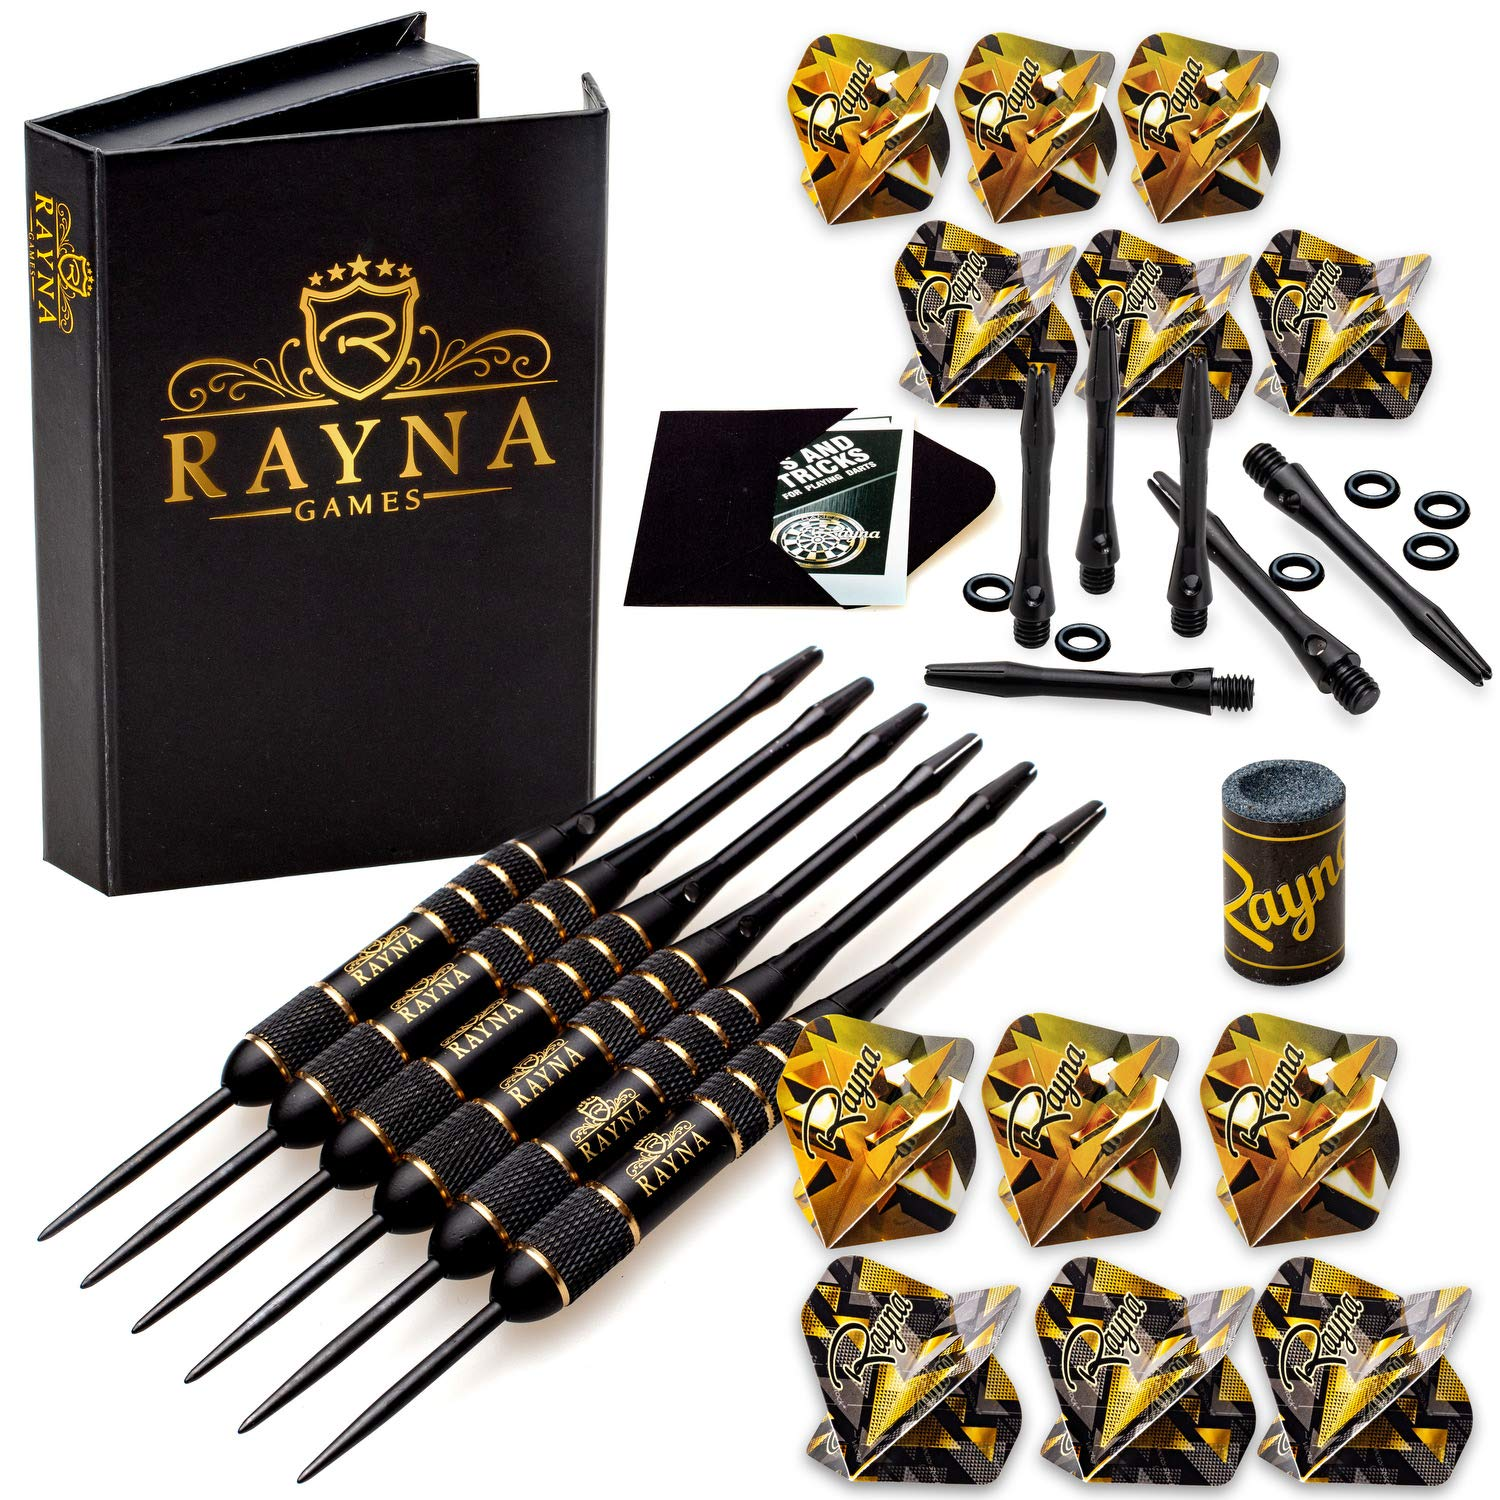 Professional Darts Set - Steel Tip Darts with Dart Accessories Kit - Customizable Configuration 6 Brass Barrels 20 Grams, 12x Aluminum Shafts 35/48mm, 12x Flights, Dart Sharpener and Premium Dart Case